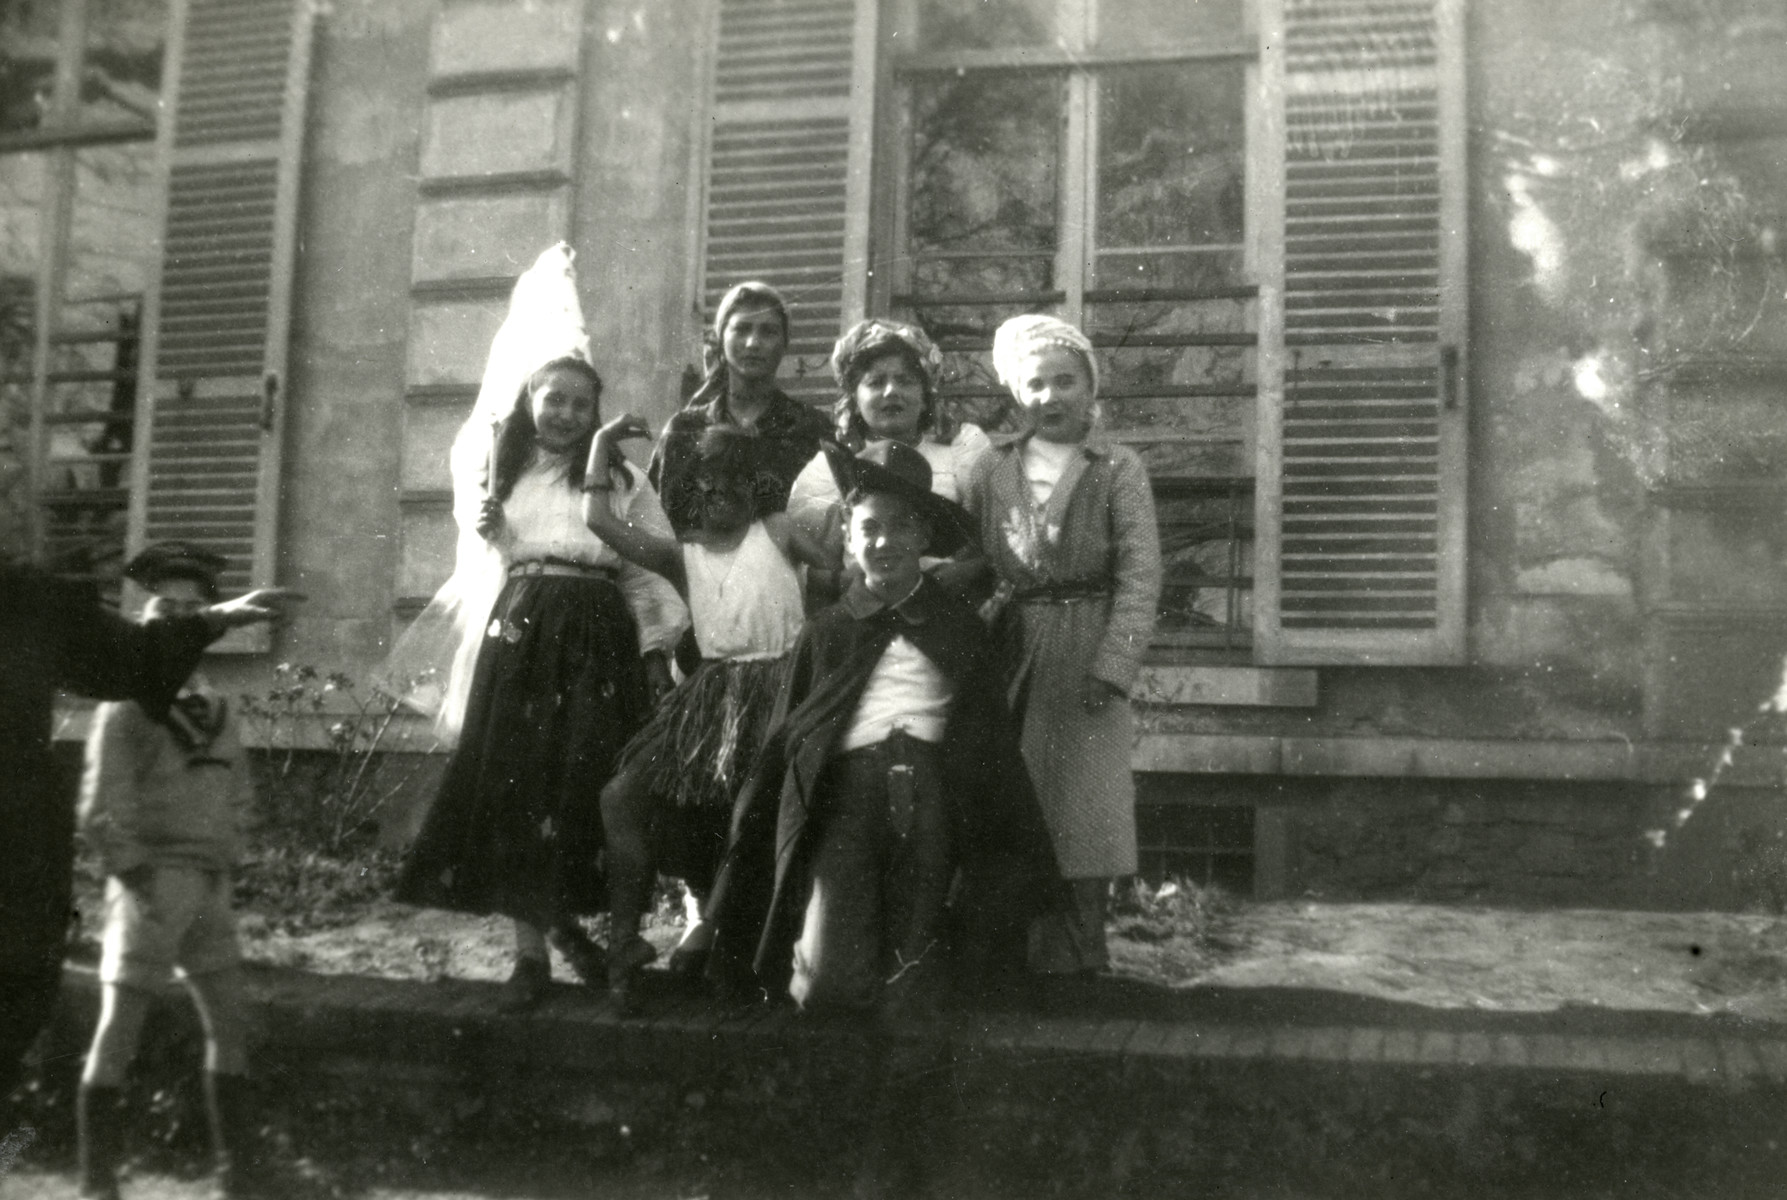 Children pose in their Purim costumes in the Taverny (Vaucelles) children's home.